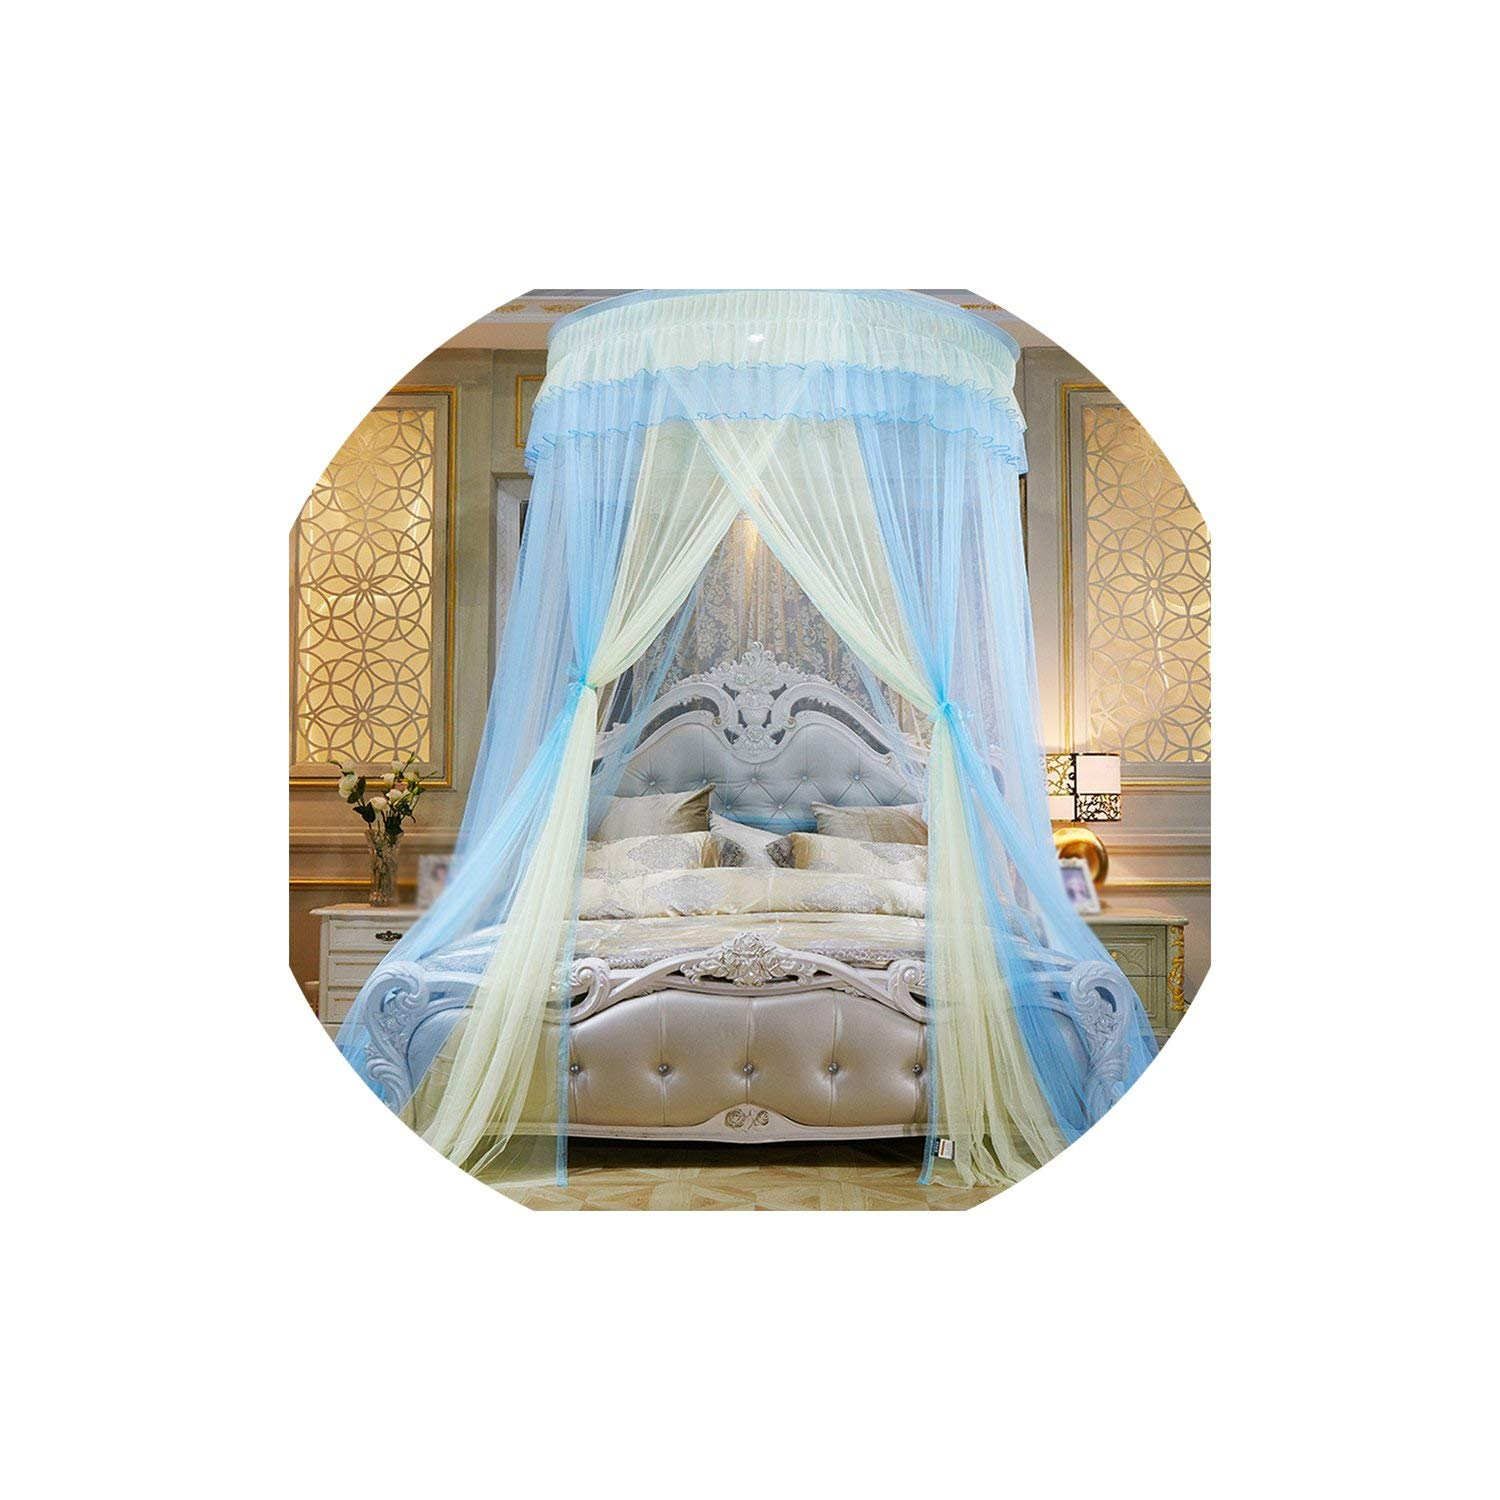 Colorful Mosquito Net Princess Insect Net Single Door Hung Dome Bed Canopies Netting Round Mosquito Net Commonly Used,5